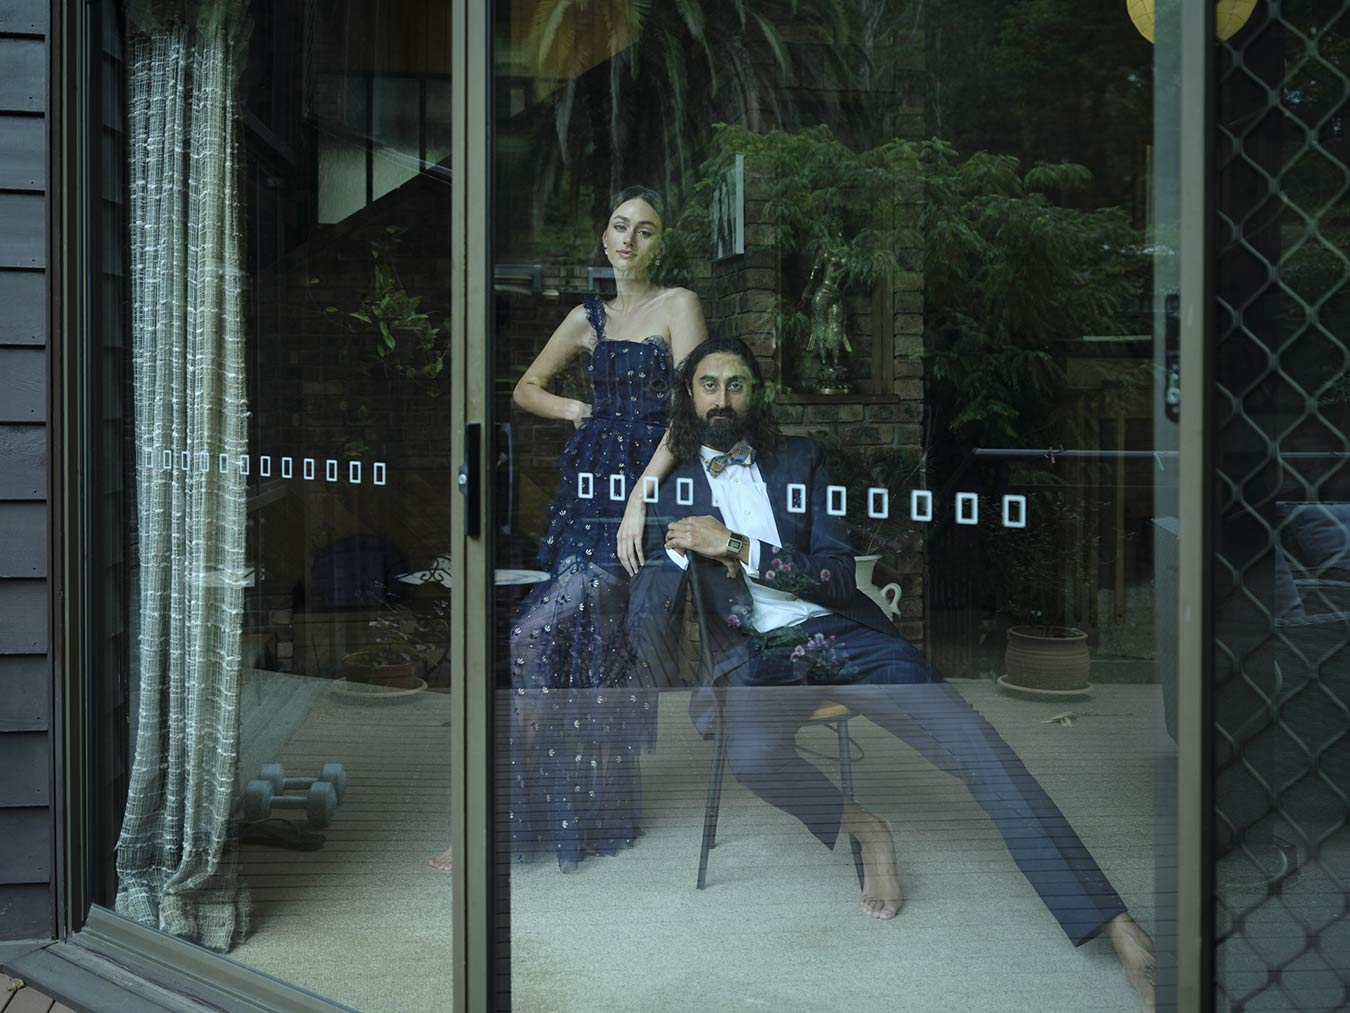 man-andwoman-behind-glass-door-dressed-formally-in-domestic-setting-without-shoes